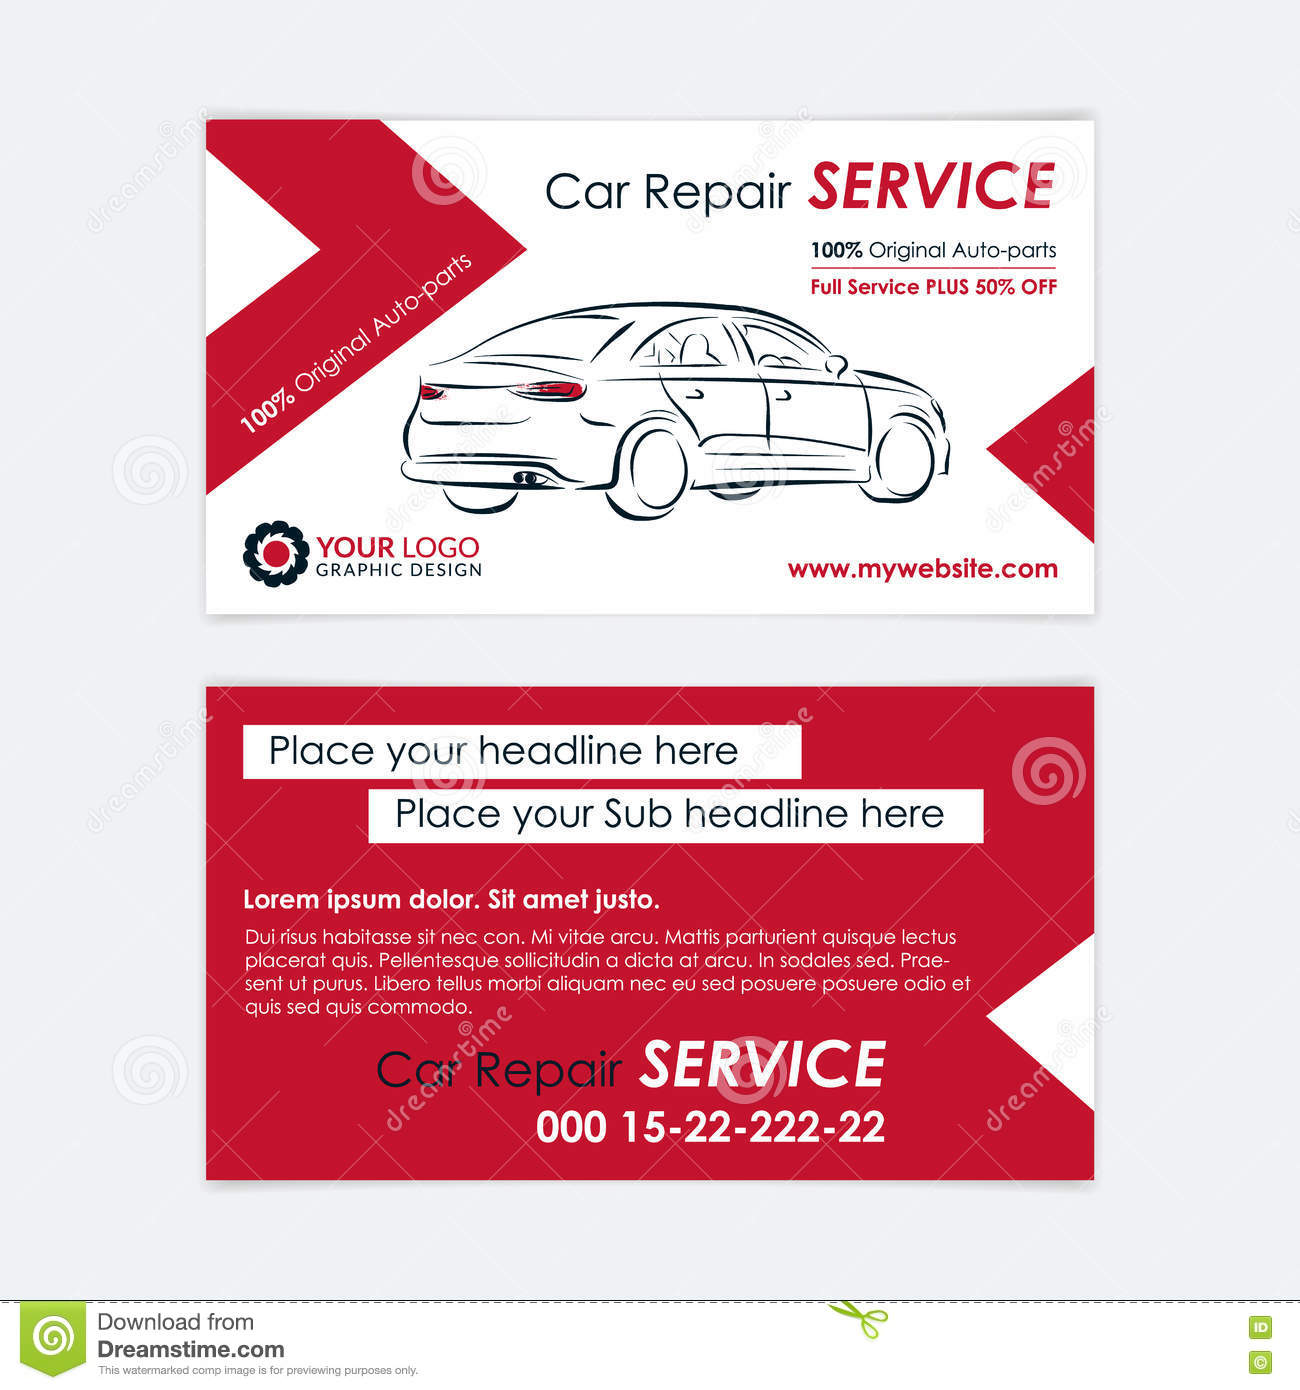 Auto repair business card template create your own business cards create your own business cards stock vector download comp accmission Choice Image